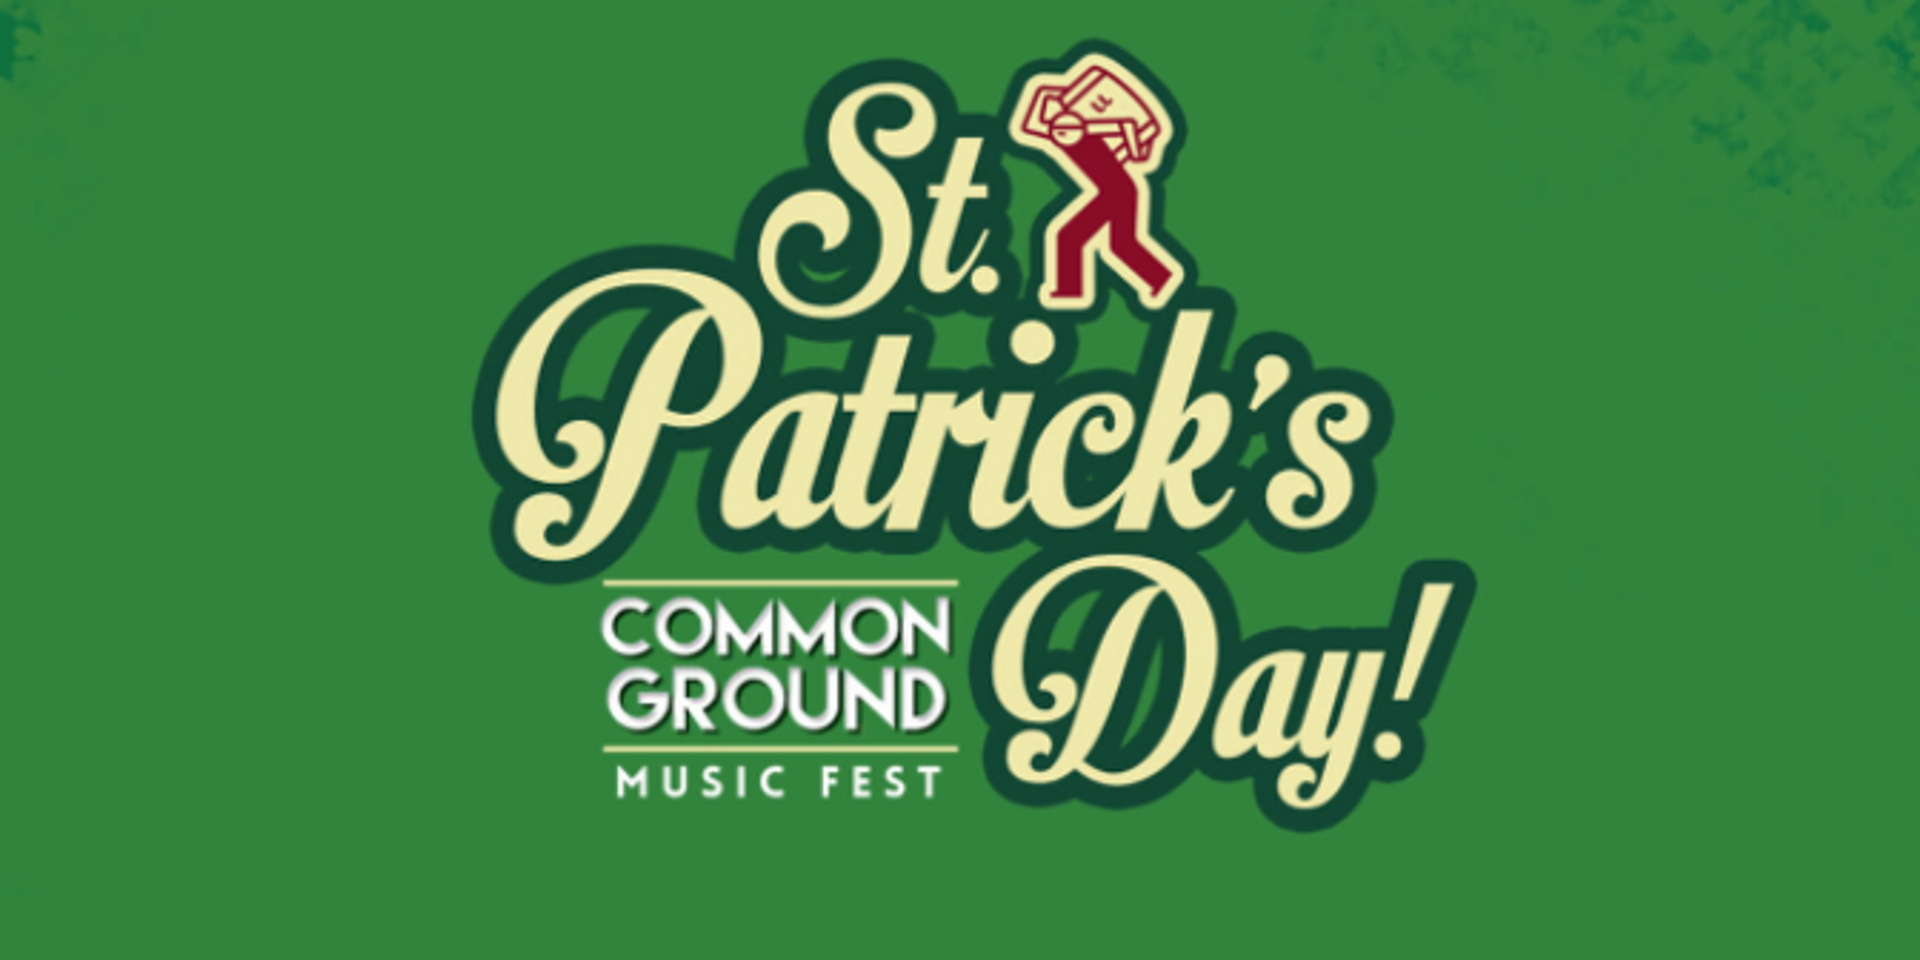 Celebrate St. Patrick's Day with Jameson Irish Whiskey at the Common Ground Music Fest